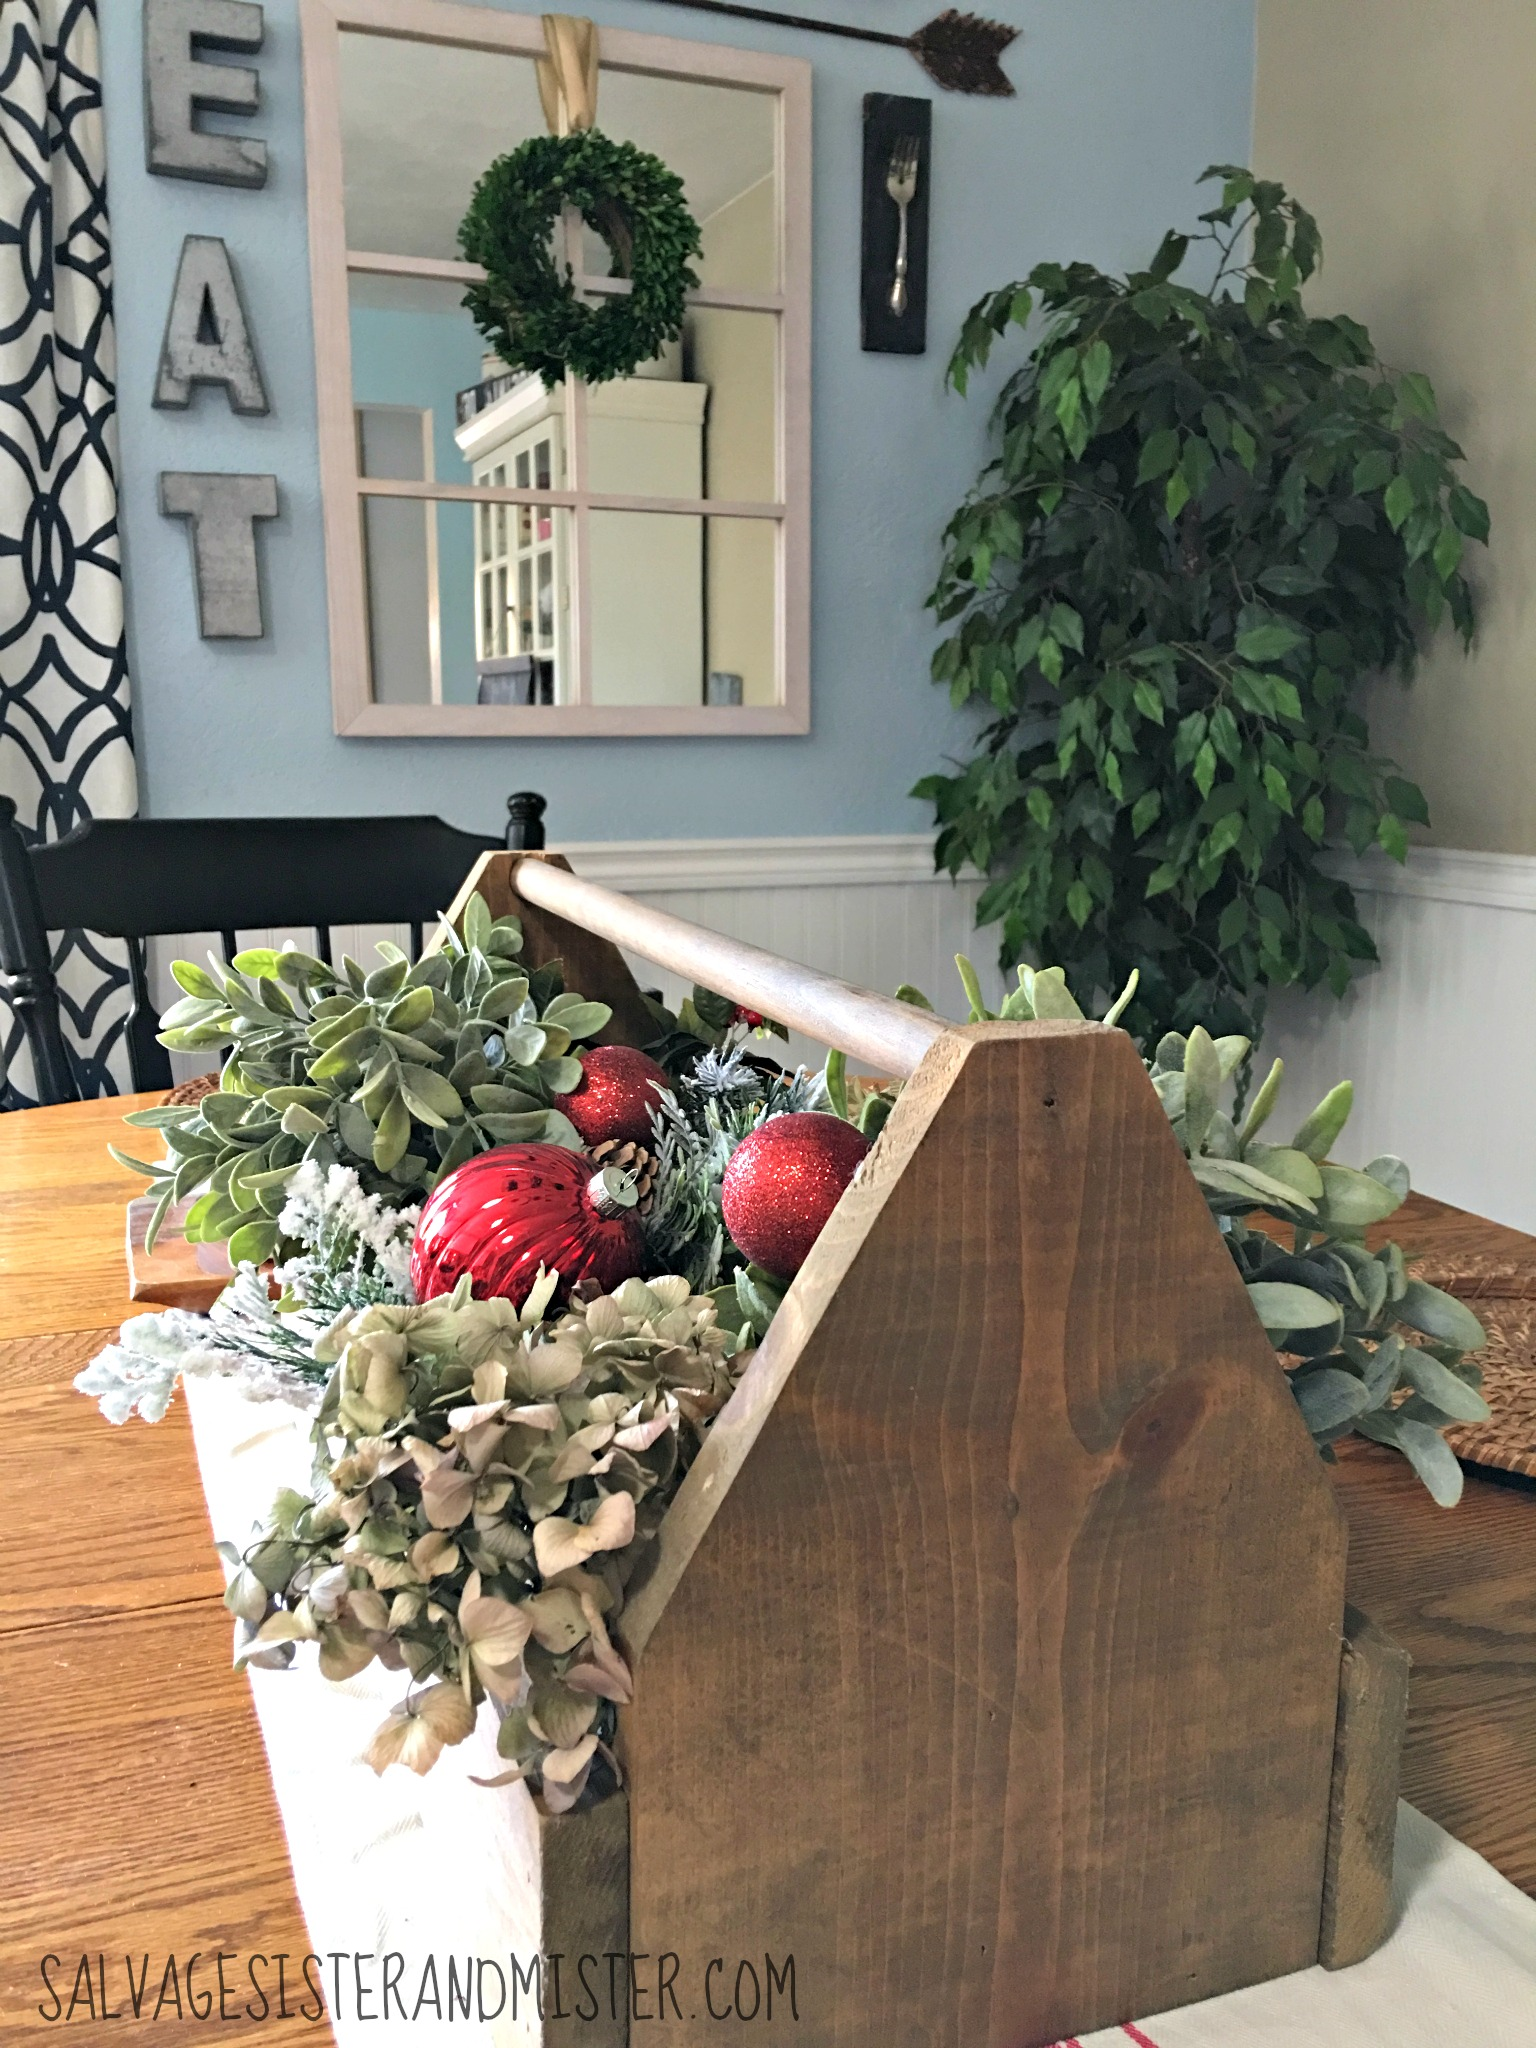 Salvaged Christmas home tour using junkin , flea market, thrifted, and made items. Make the best with what you have. A little famr house feel. Dining room with wood tool caddy.